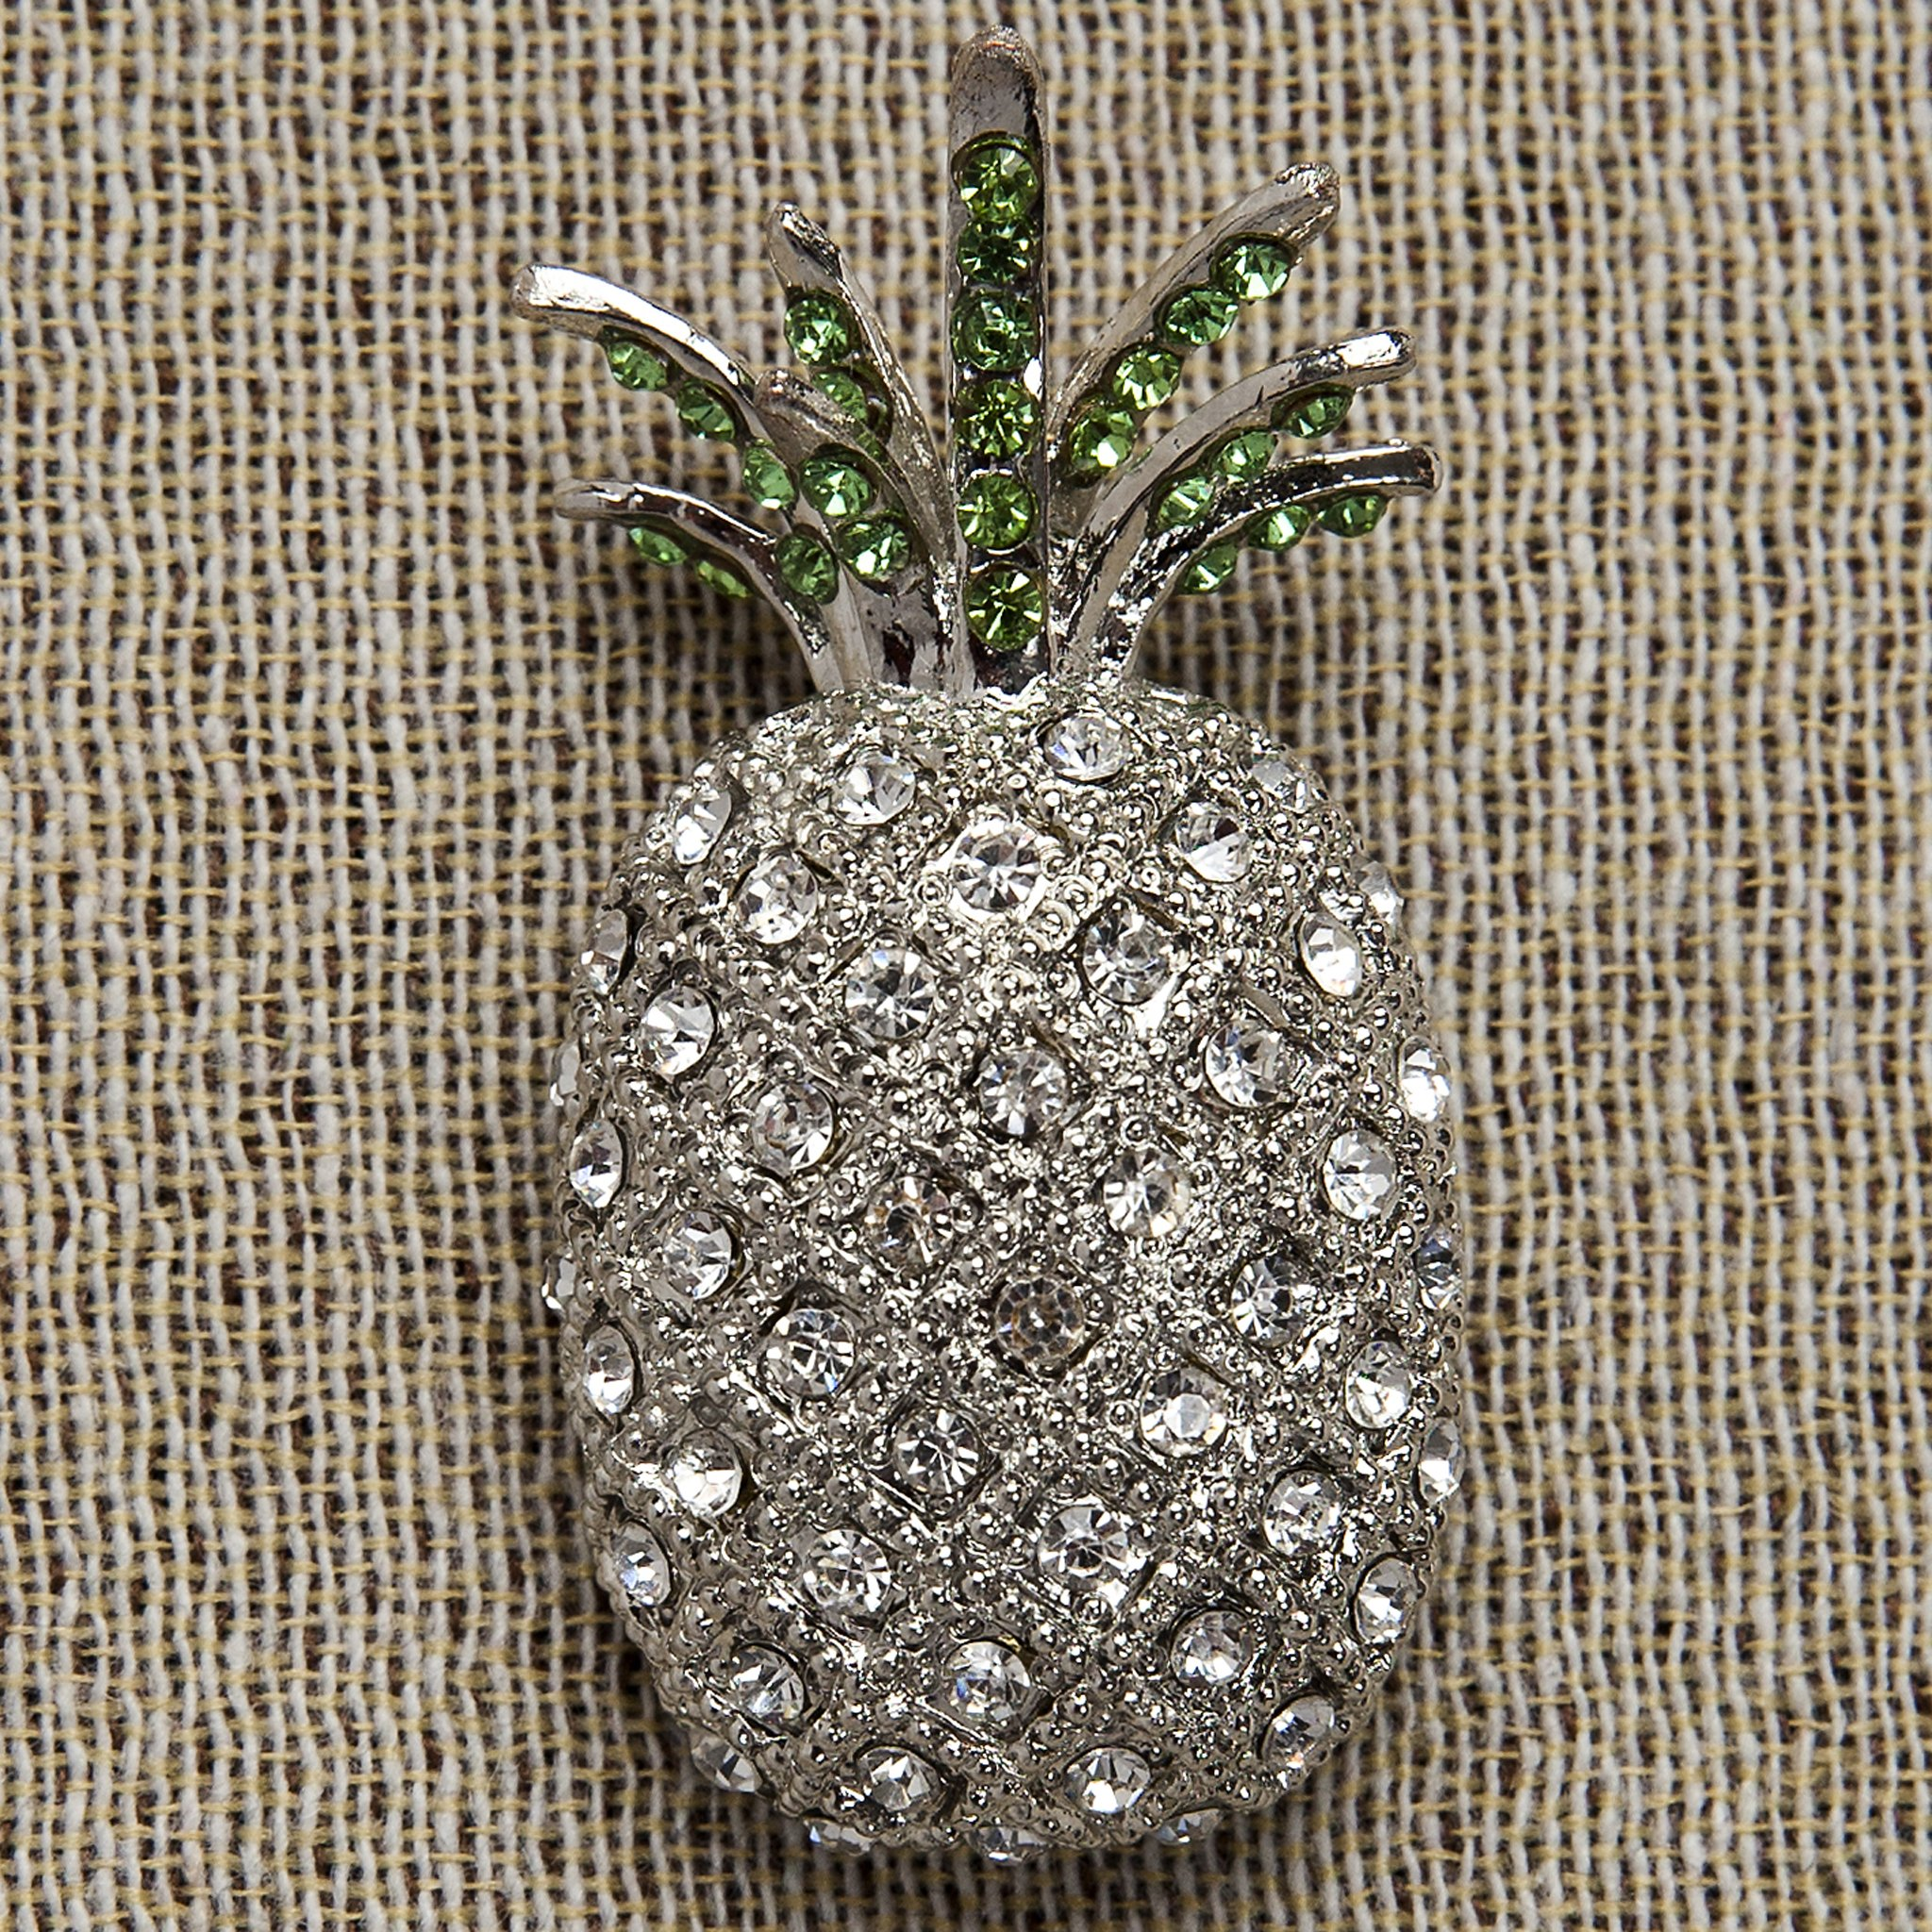 Evelyn Hope Collection Pineapple jewelry pin-brooch